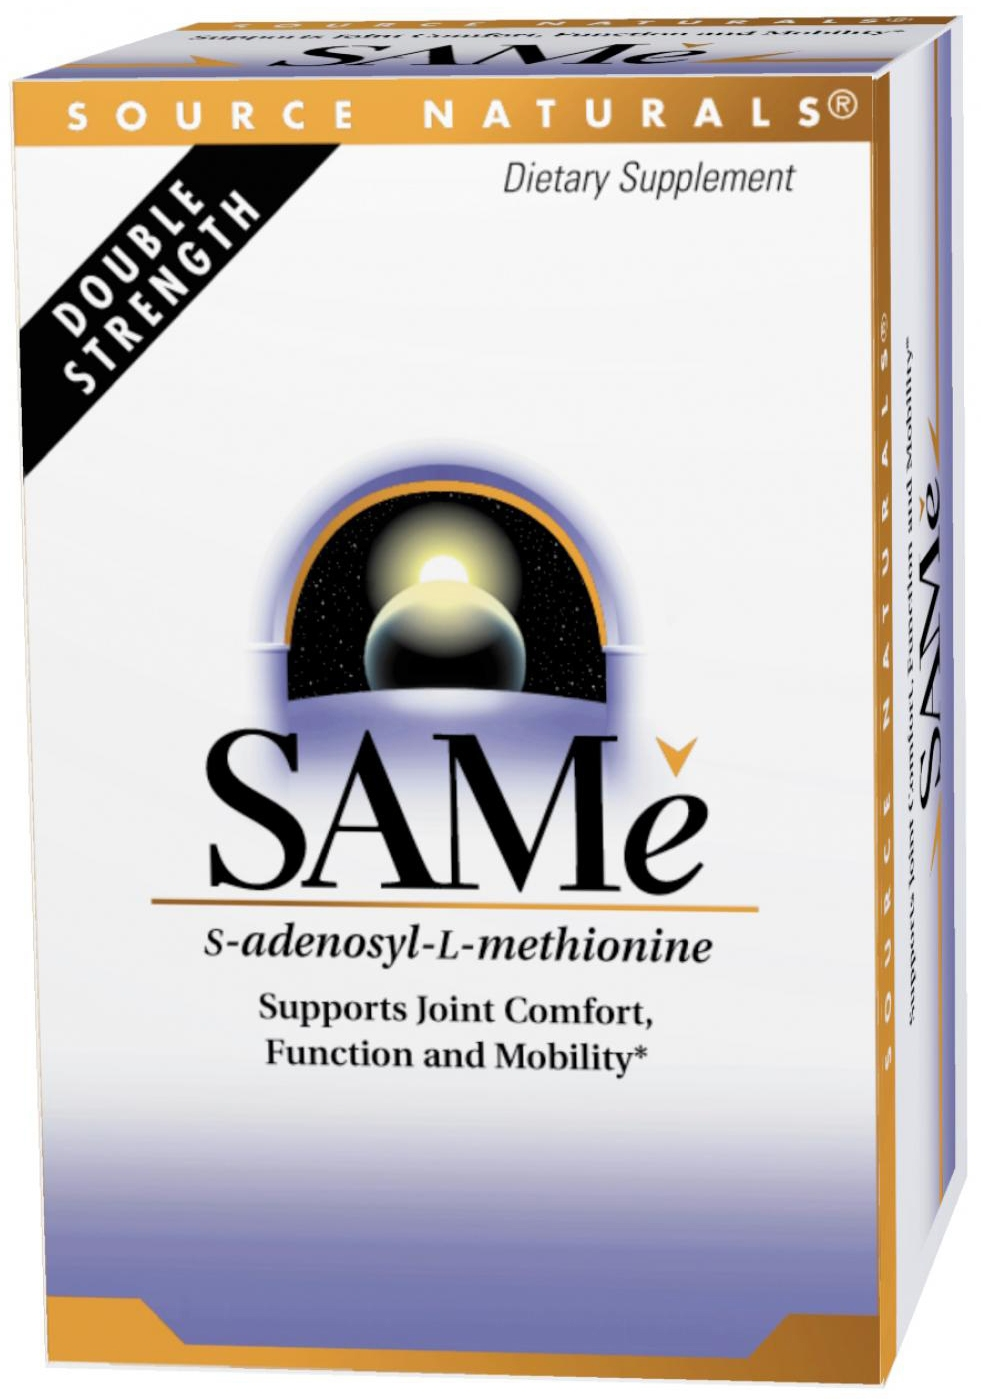 SAMe 200 mg 60 Enteric Coated Tablets by Source Naturals